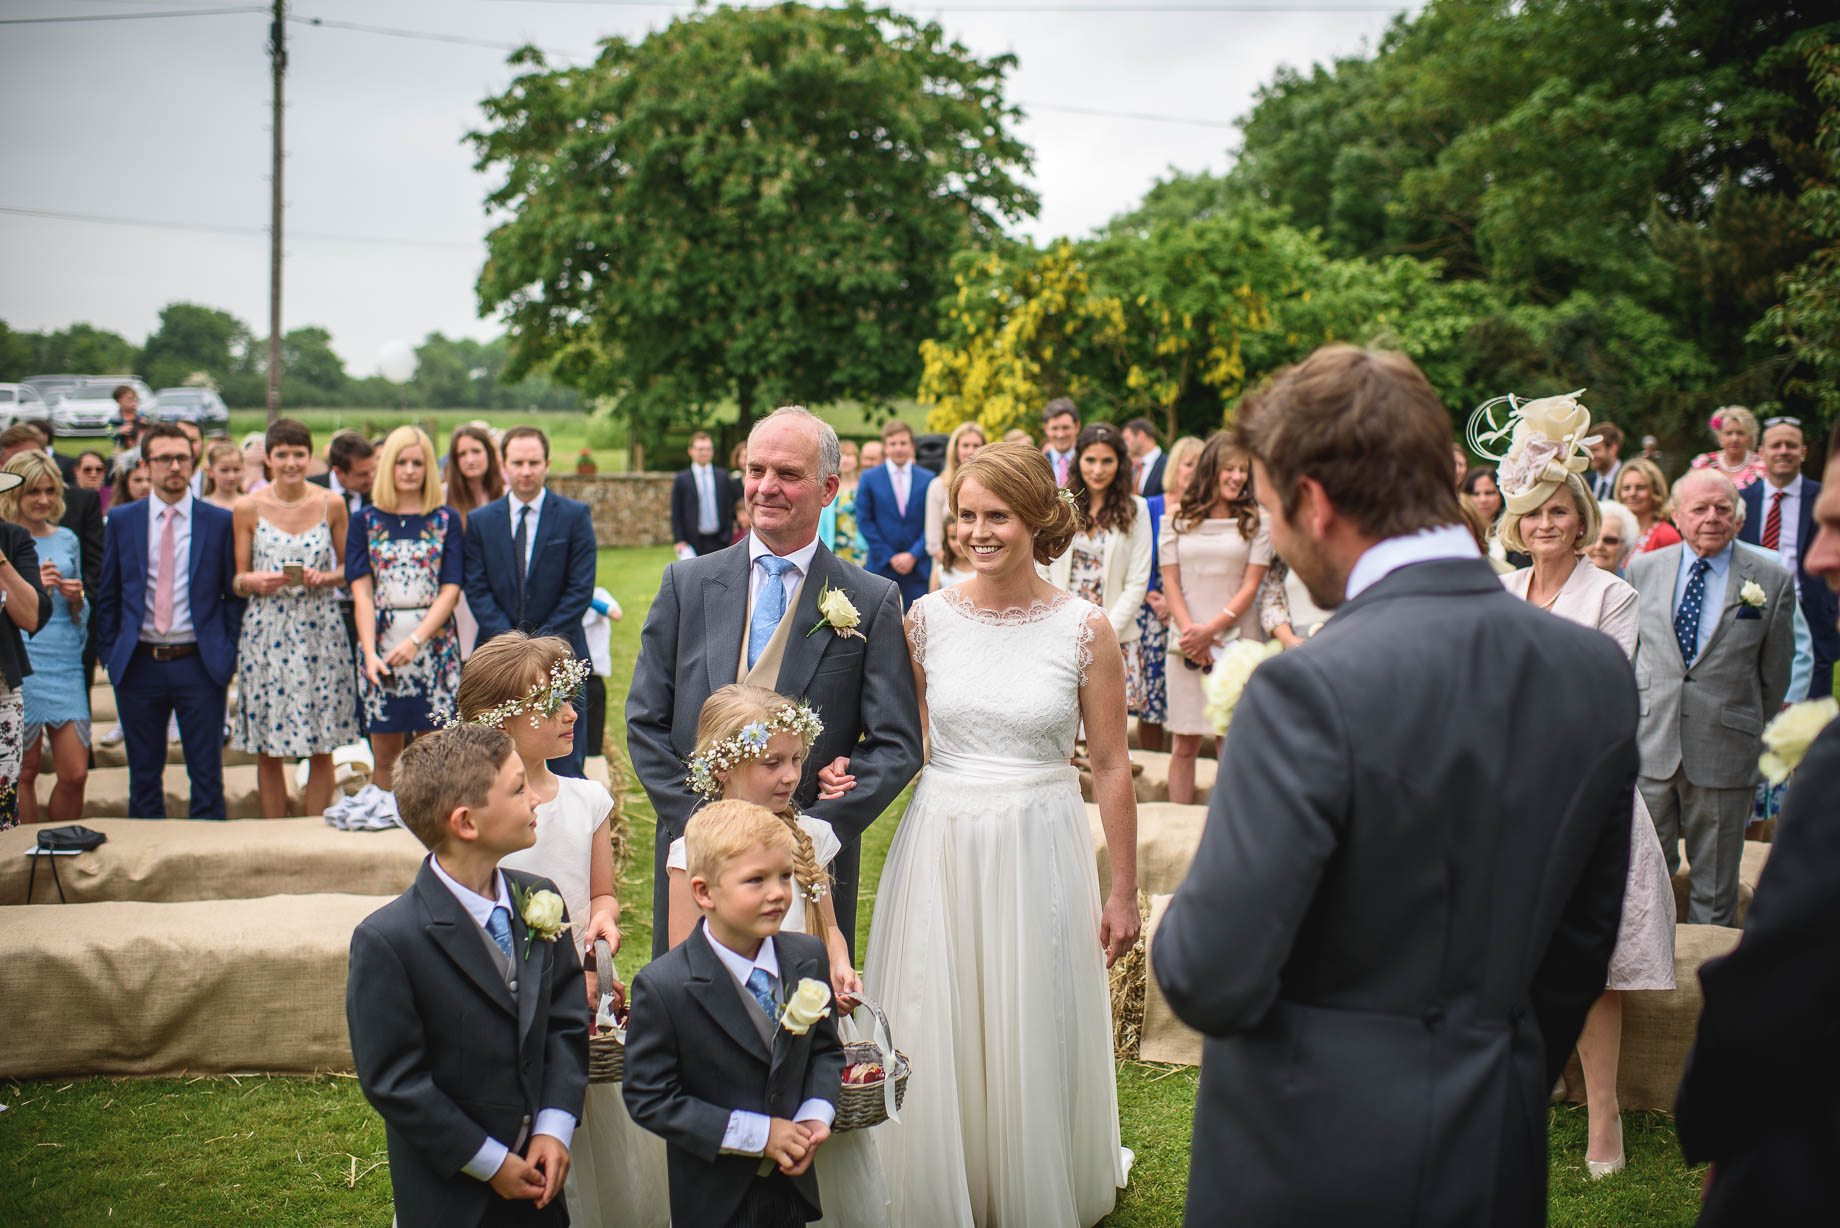 Wiltshire wedding photography by Guy Collier - Lucie and Matt (47 of 198)